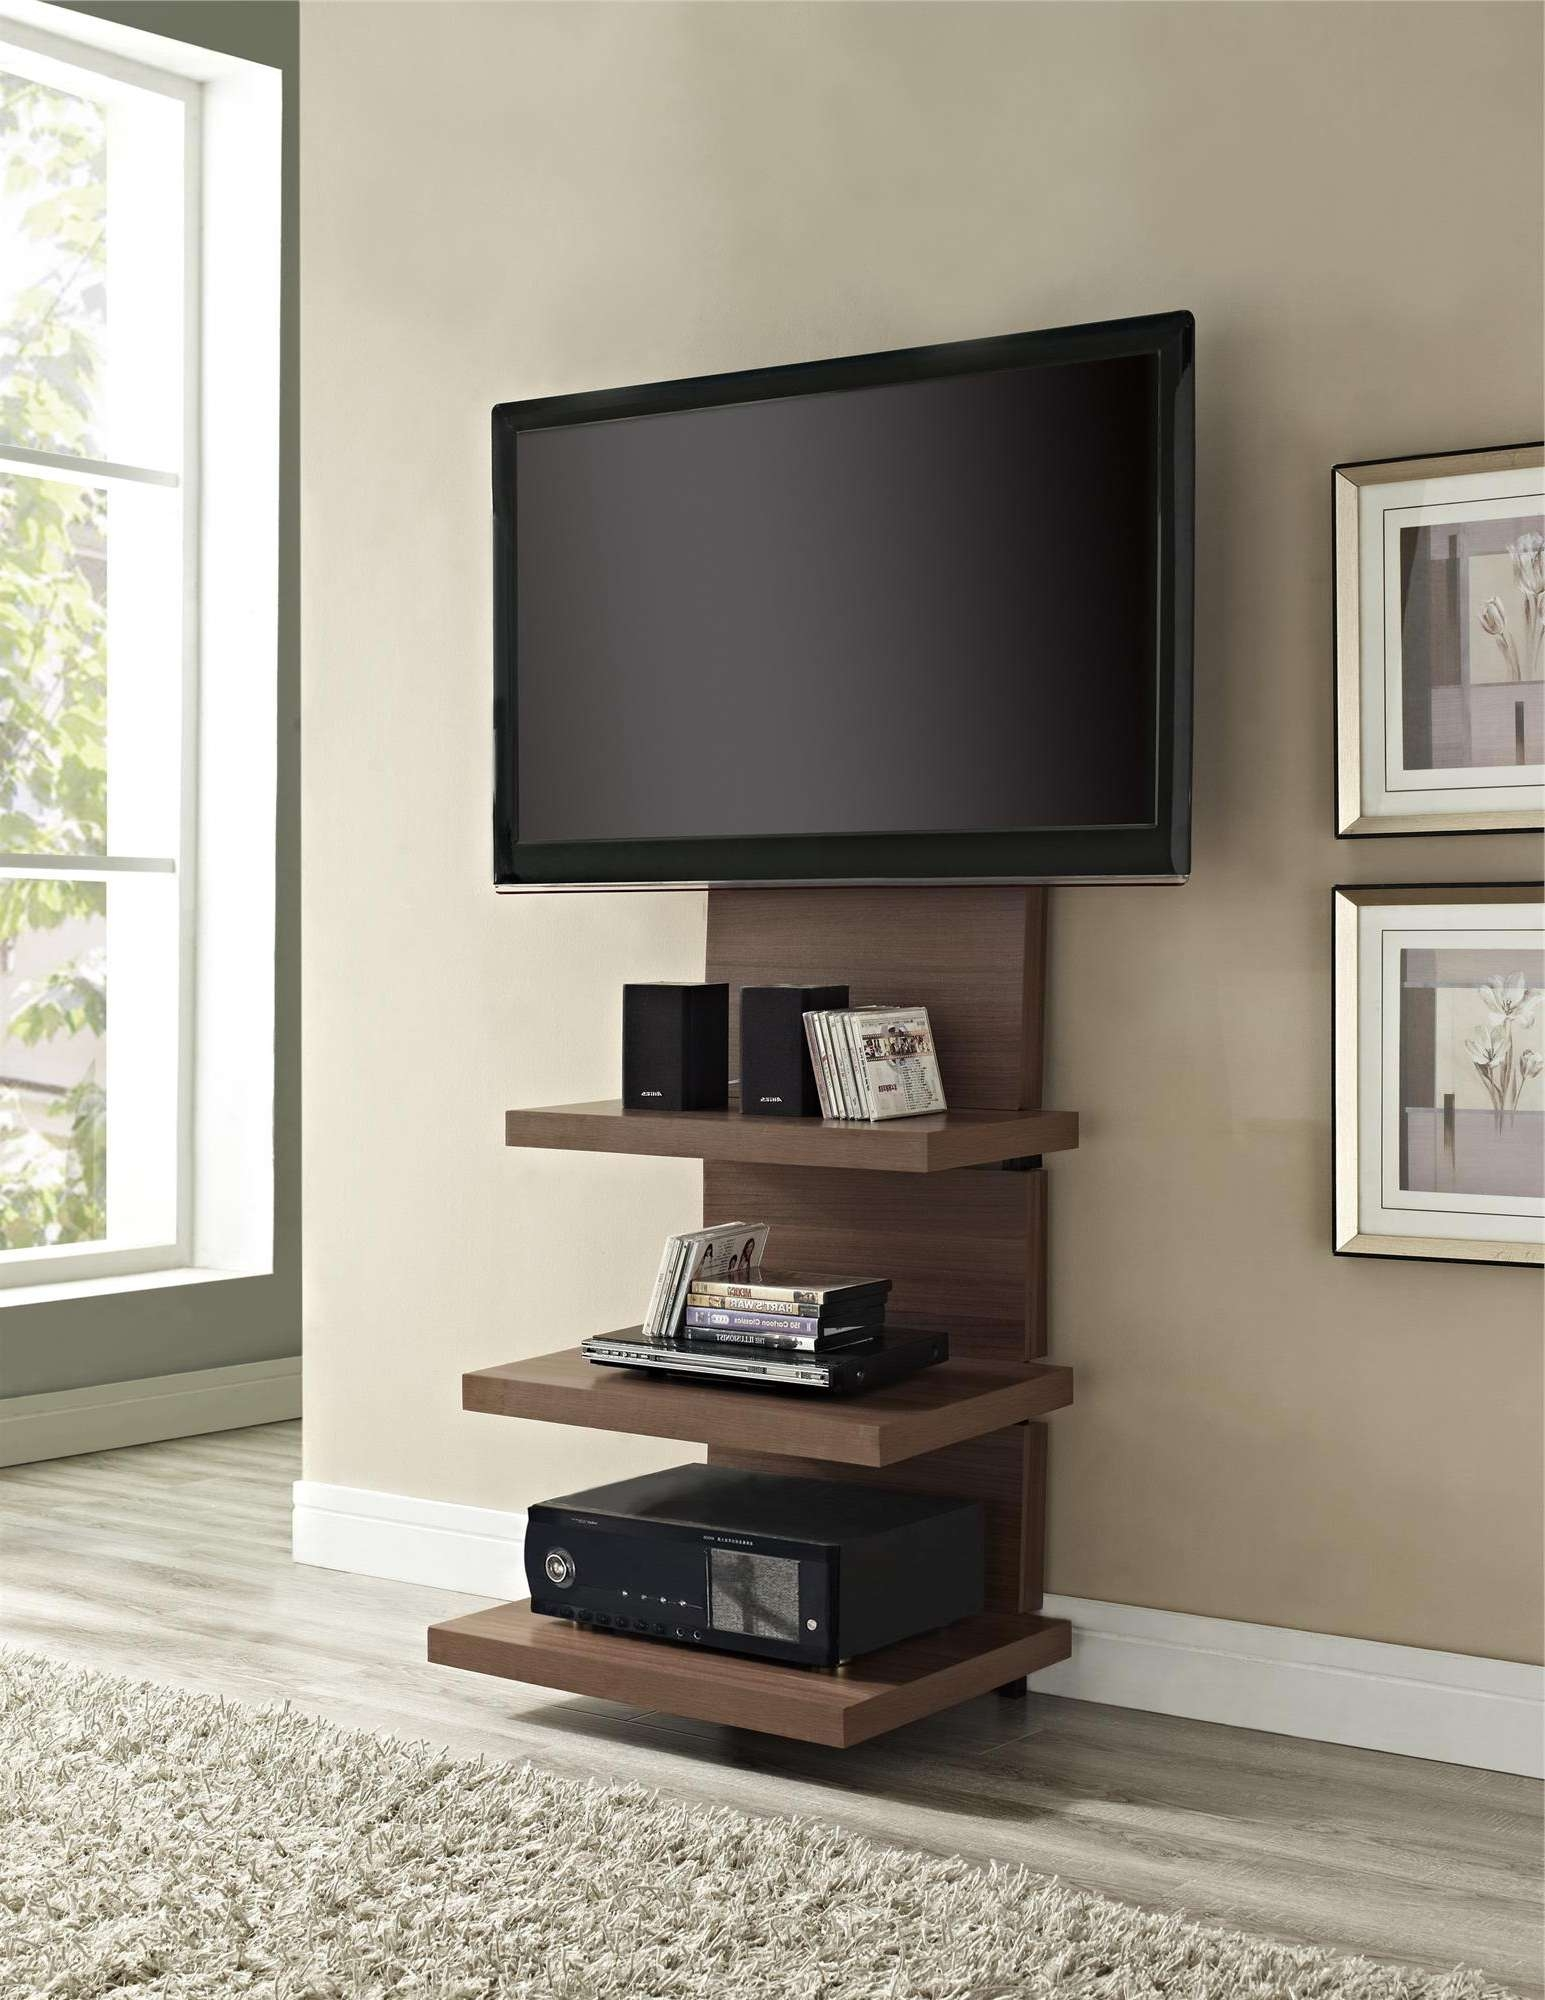 Tall Wood Wall Mounted Tv Stand With Shelves And Mount For Flat With Unique Tv Stands For Flat Screens (View 4 of 15)